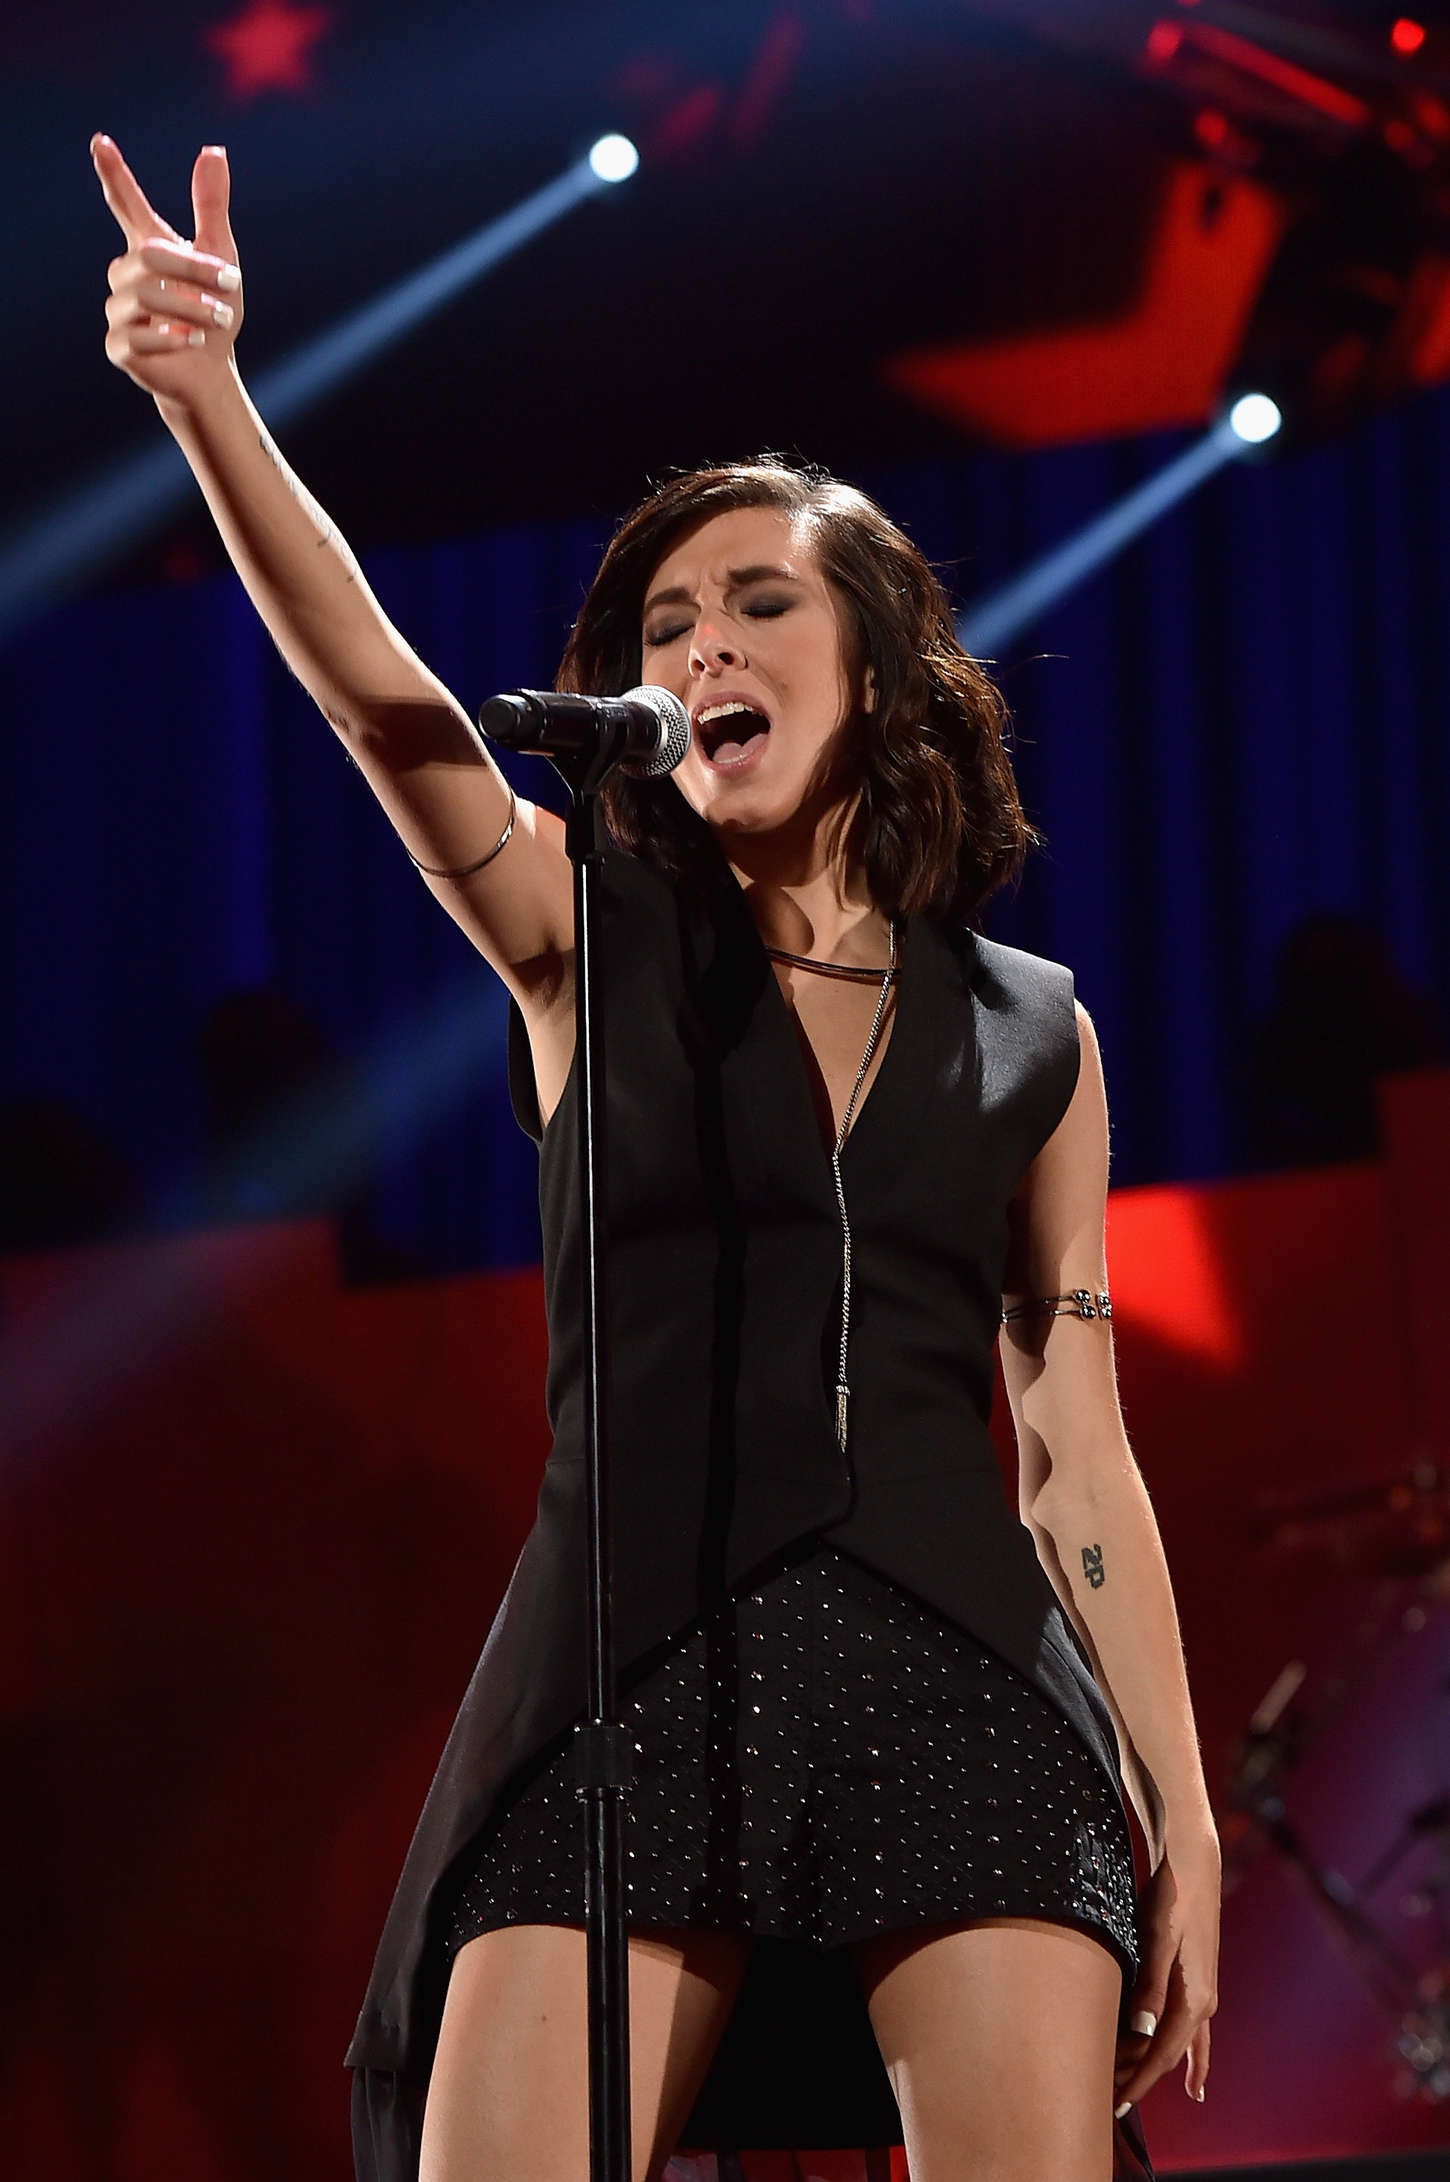 christina grimmie performs at 2015 iheartradio music festival 02